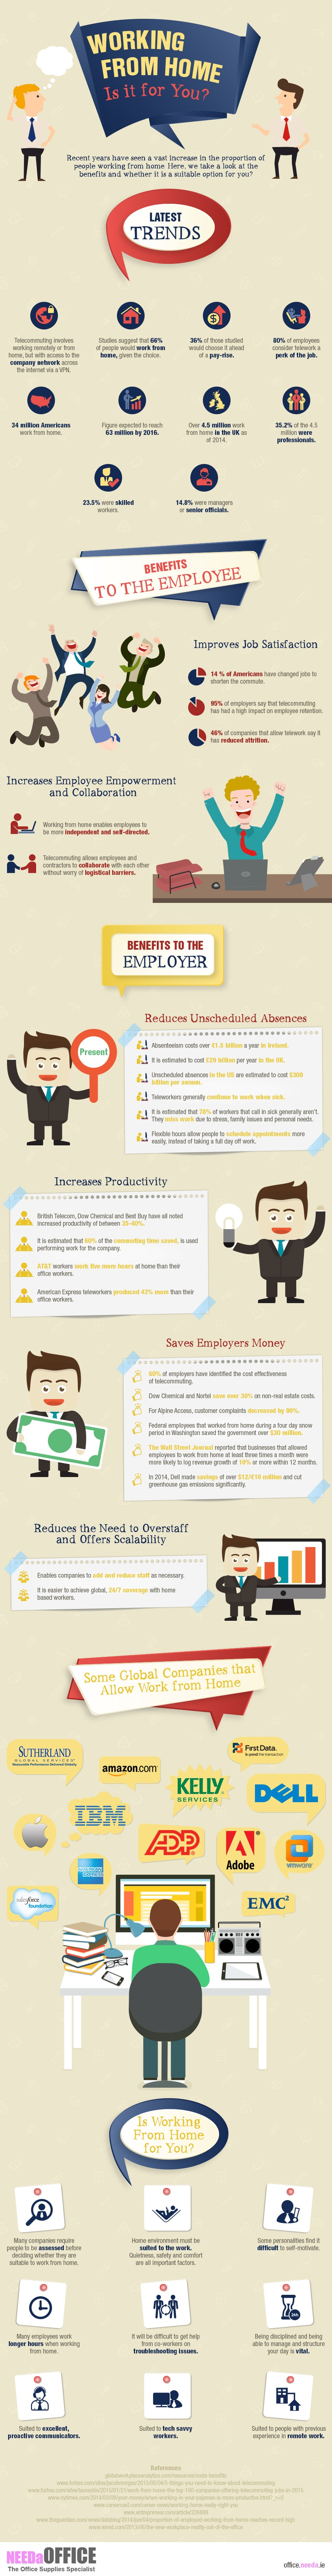 Working From Home [Infographic]